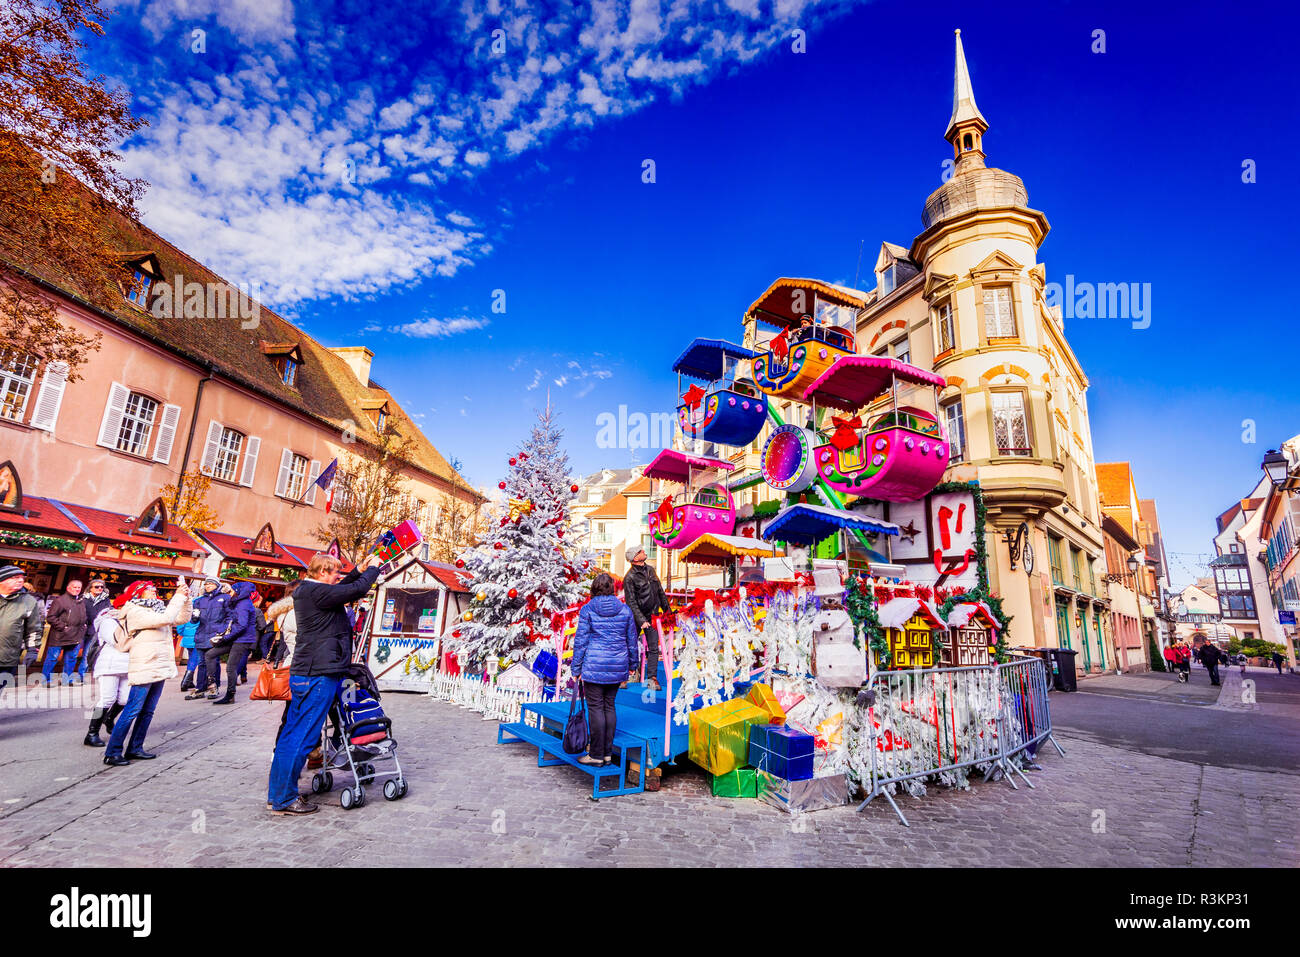 Colmar, France - December 2017. Christmas Market in Place des Dominicians, traditional Alsatian half-timbered Xmas decorated city in Alsace. - Stock Image